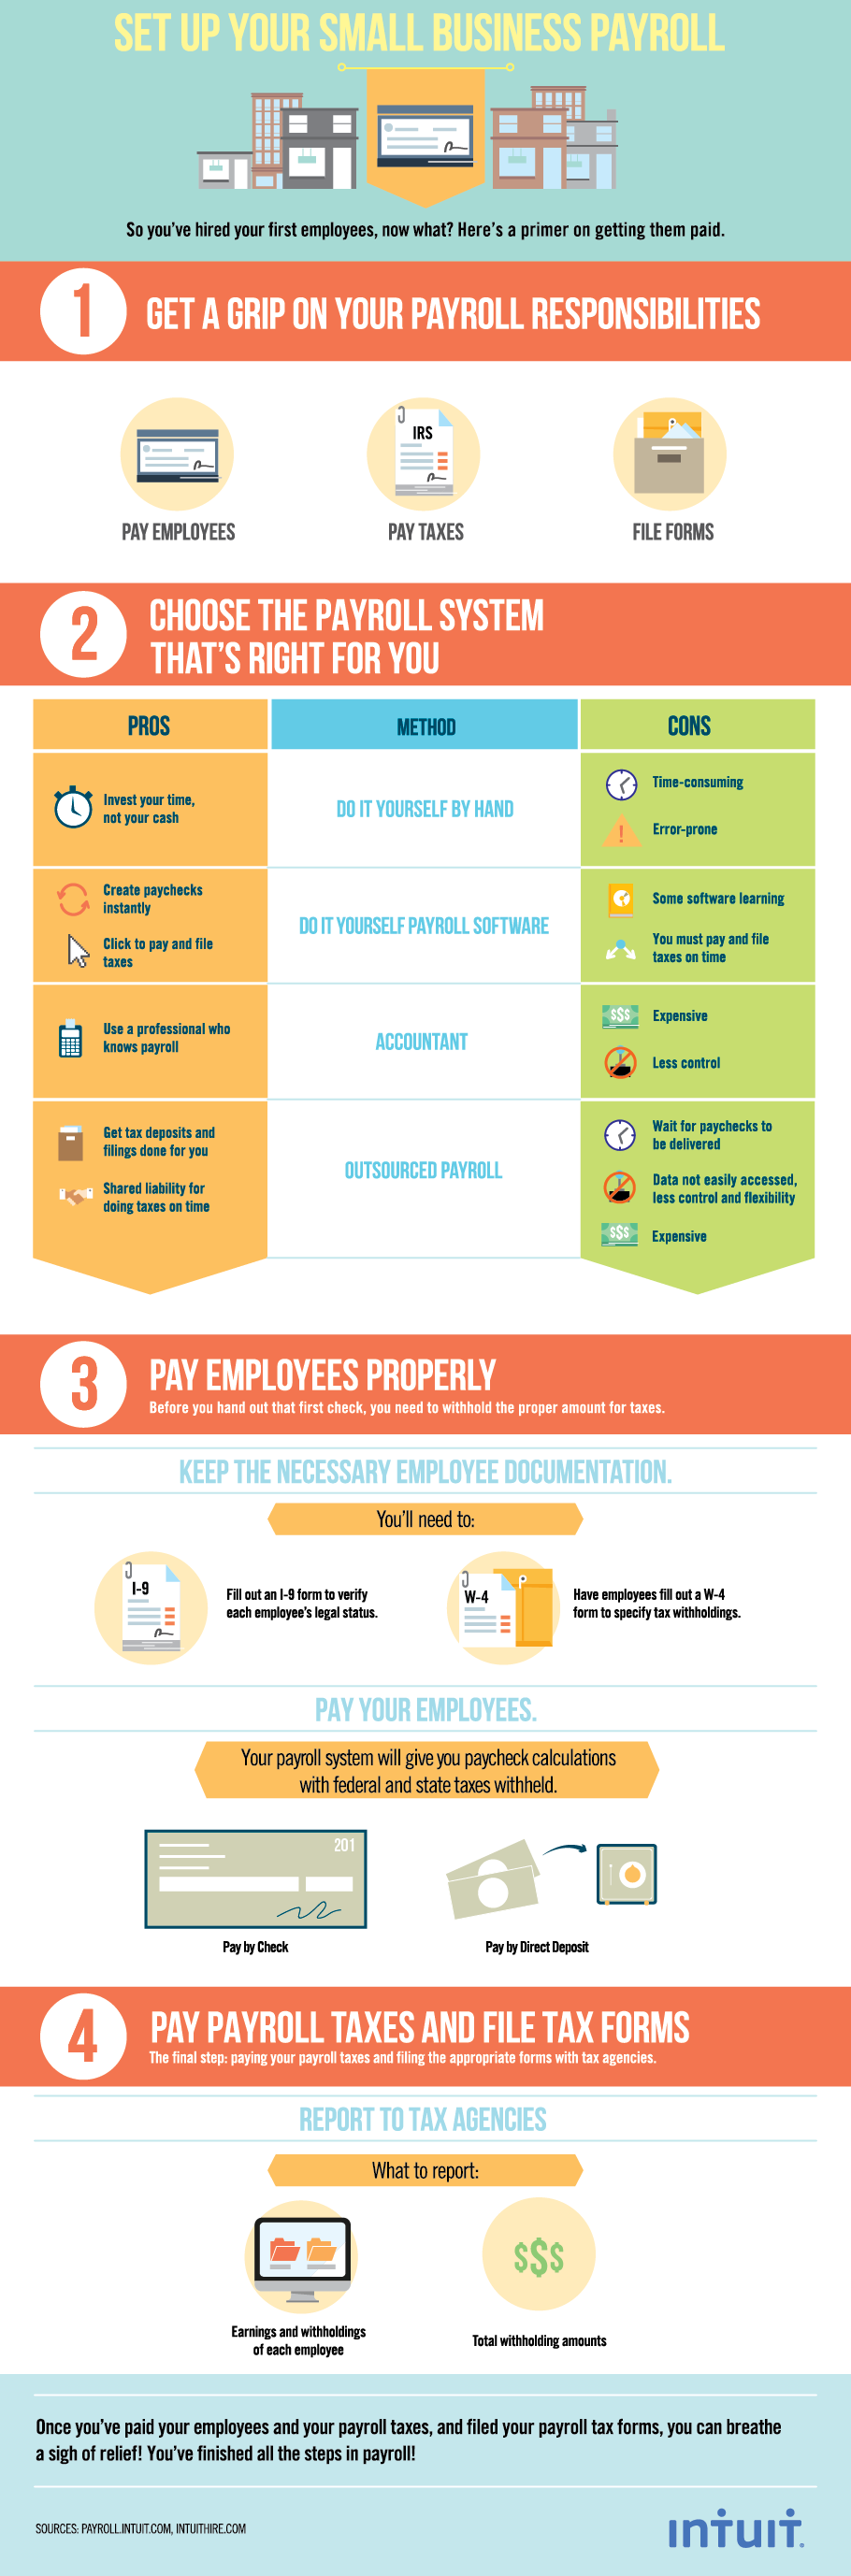 How to handle payroll easily